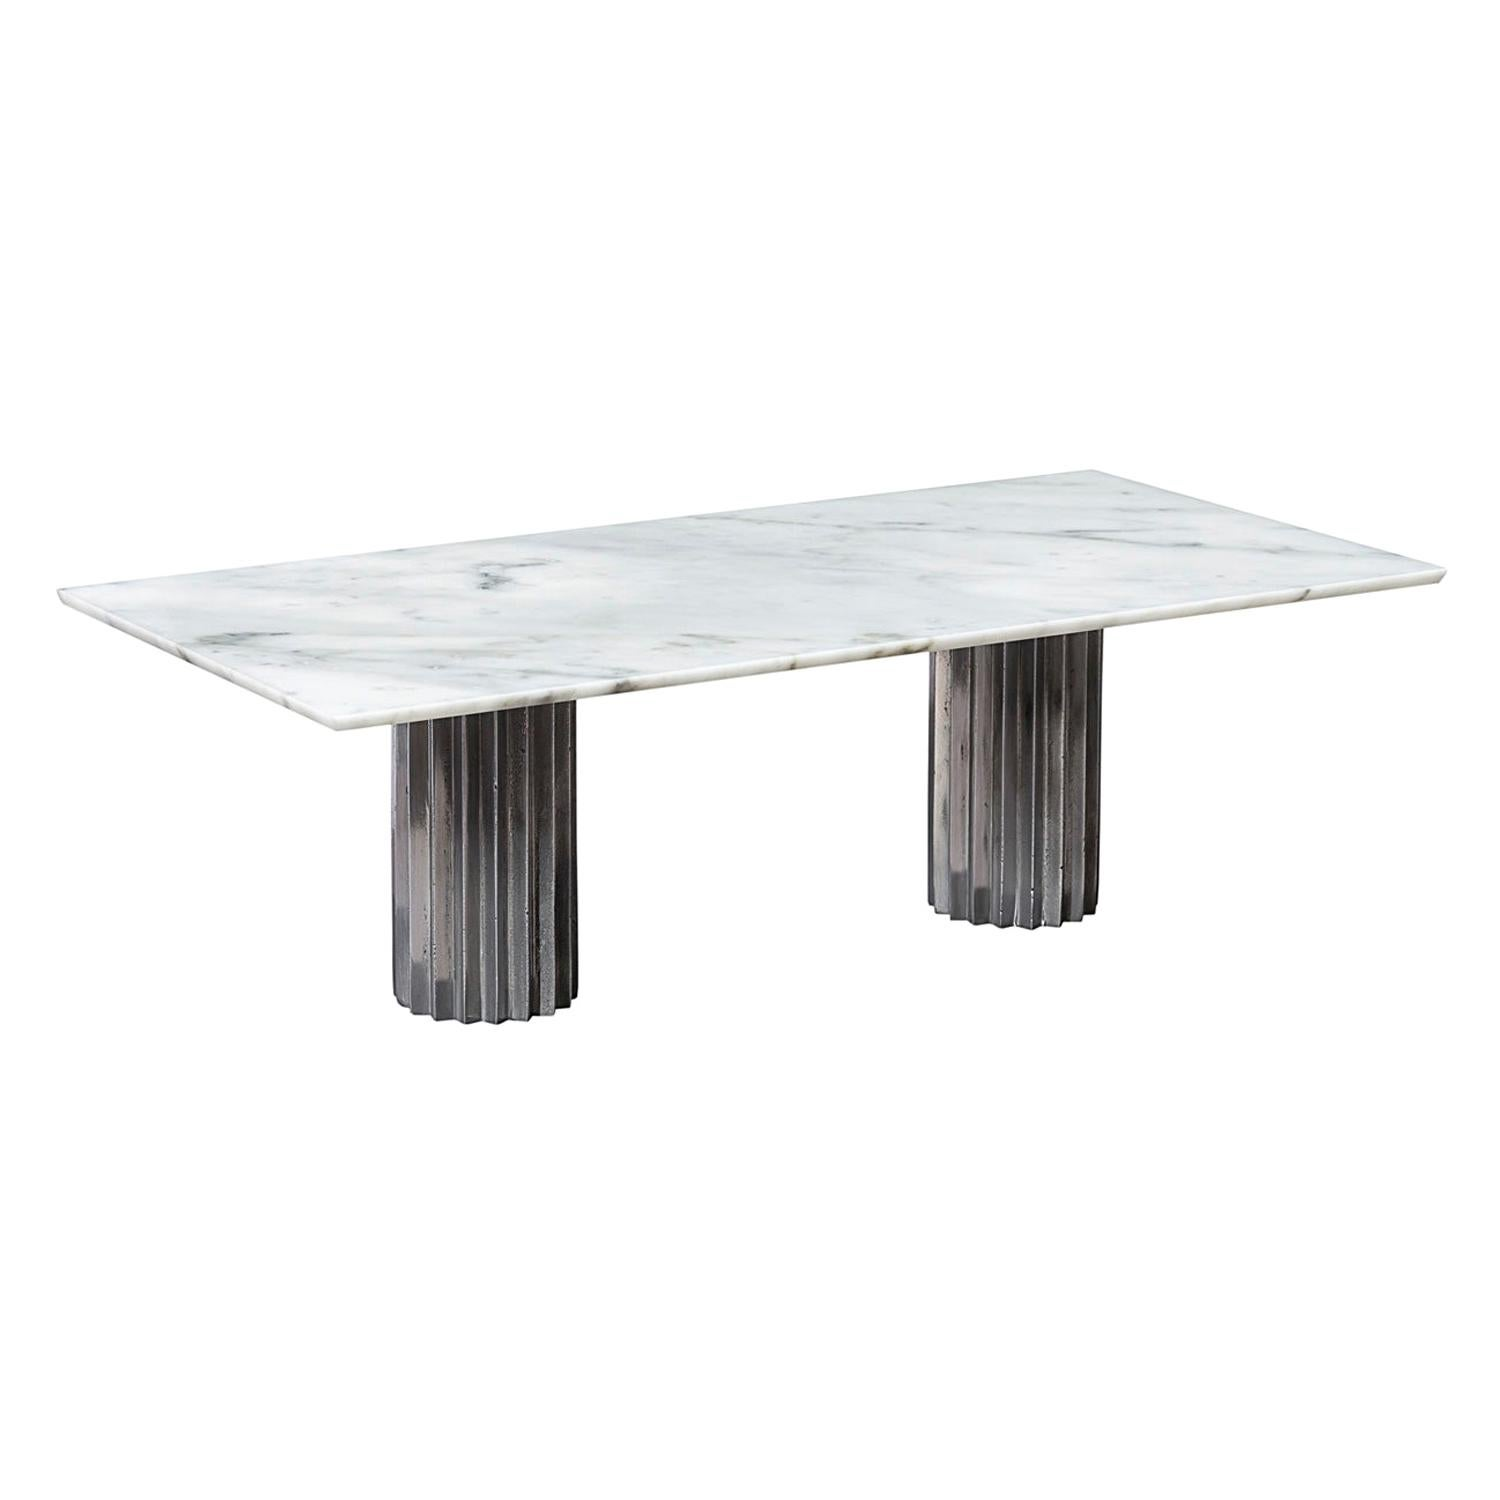 Doris Round Pedestal Dining Table In Pink Marble And Cast Bronze For Sale At 1stdibs